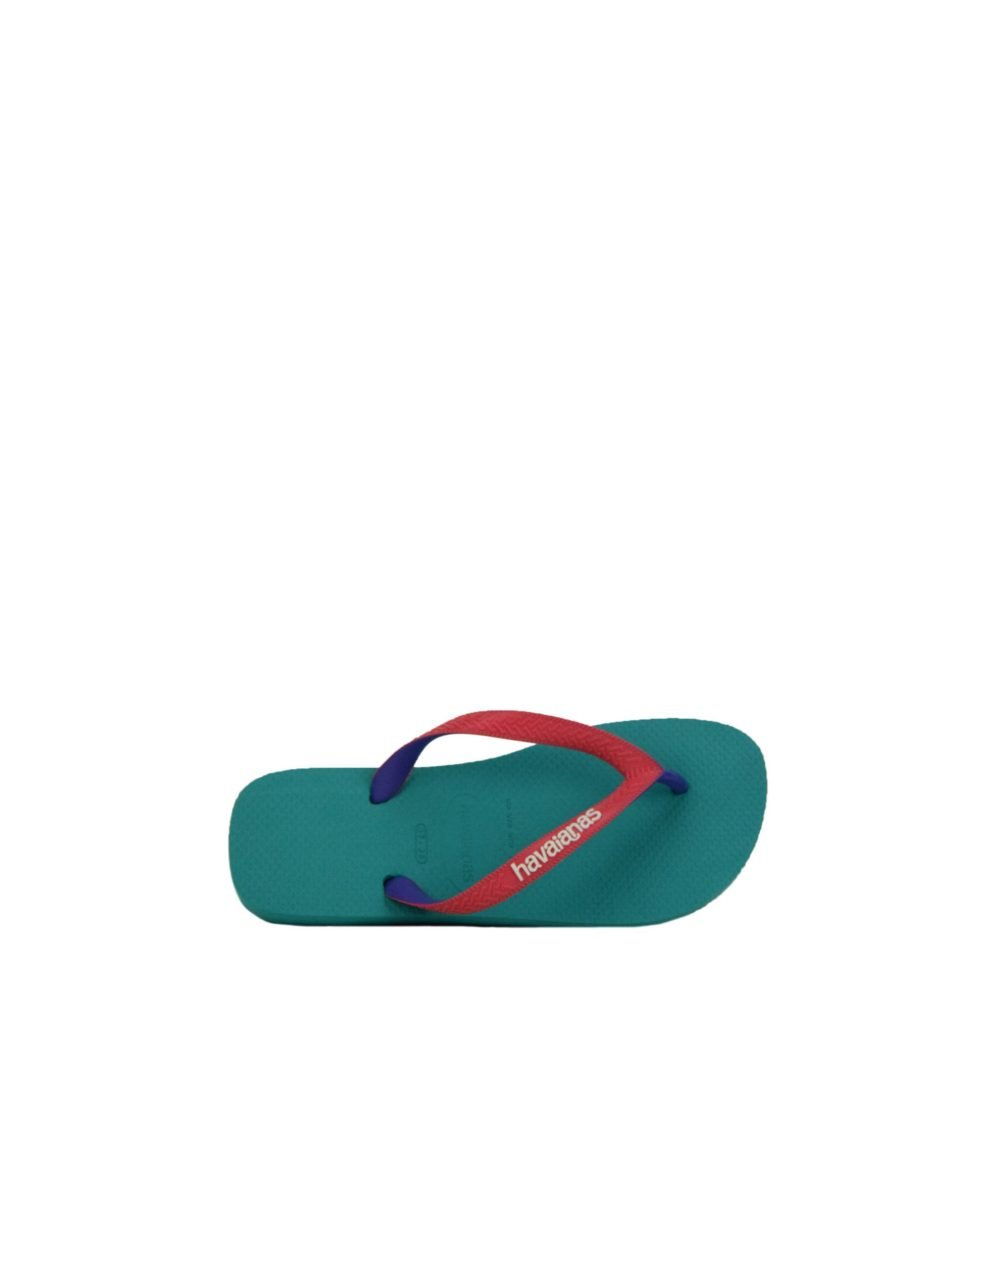 Havaianas Top Mix (4115549 7936) Verde Lago /flamin /Whild Orch